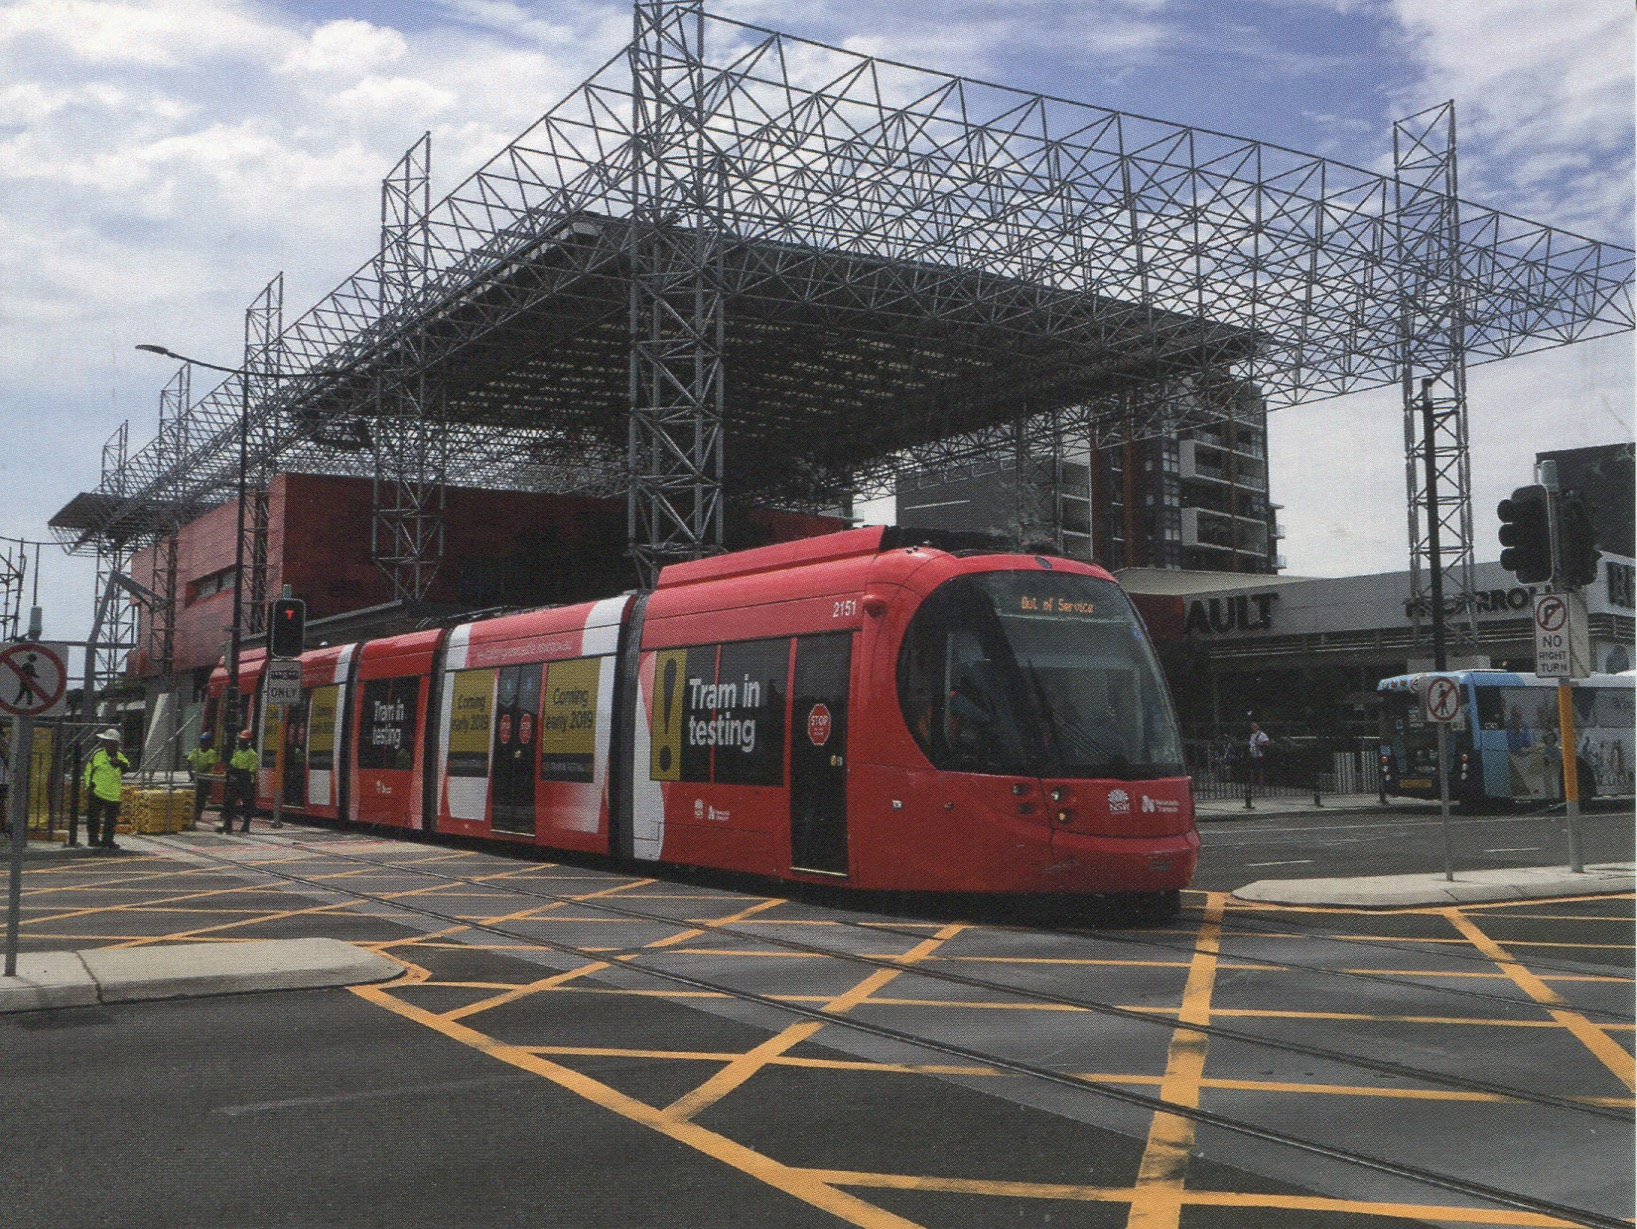 Australia - NSW - City of Newcastle Light Rail (Tramway)